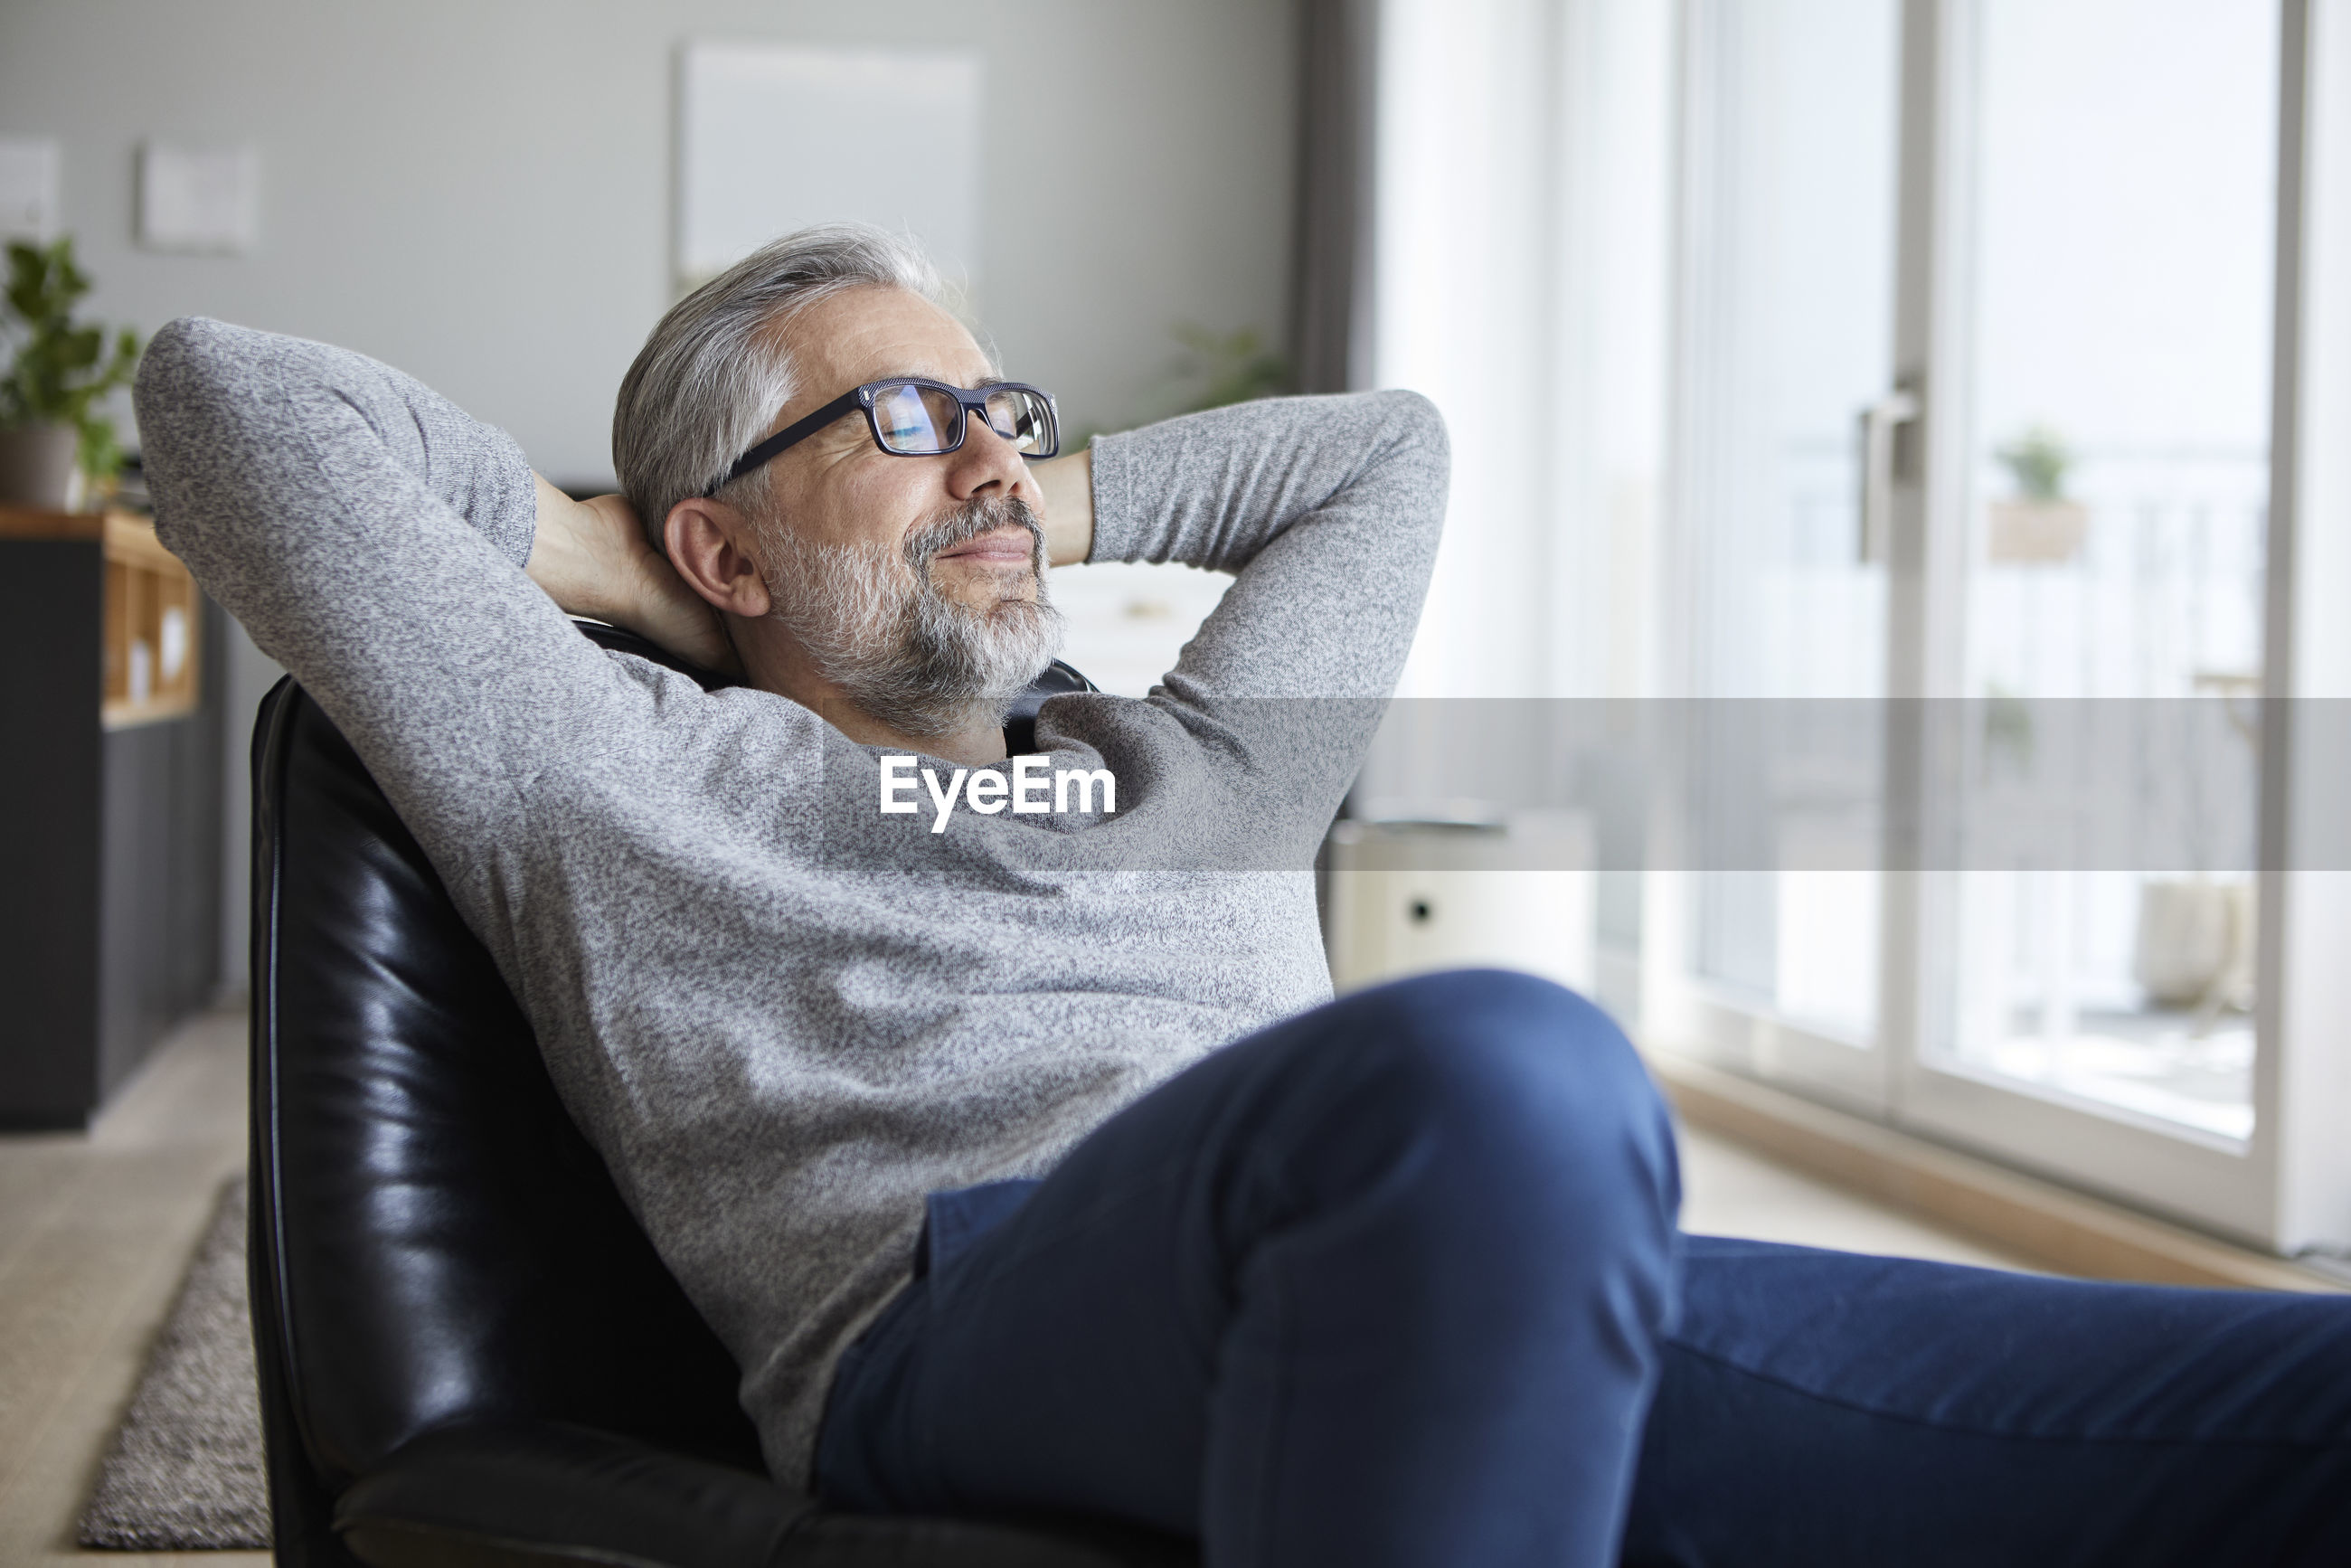 MIDSECTION OF MAN SITTING ON SOFA